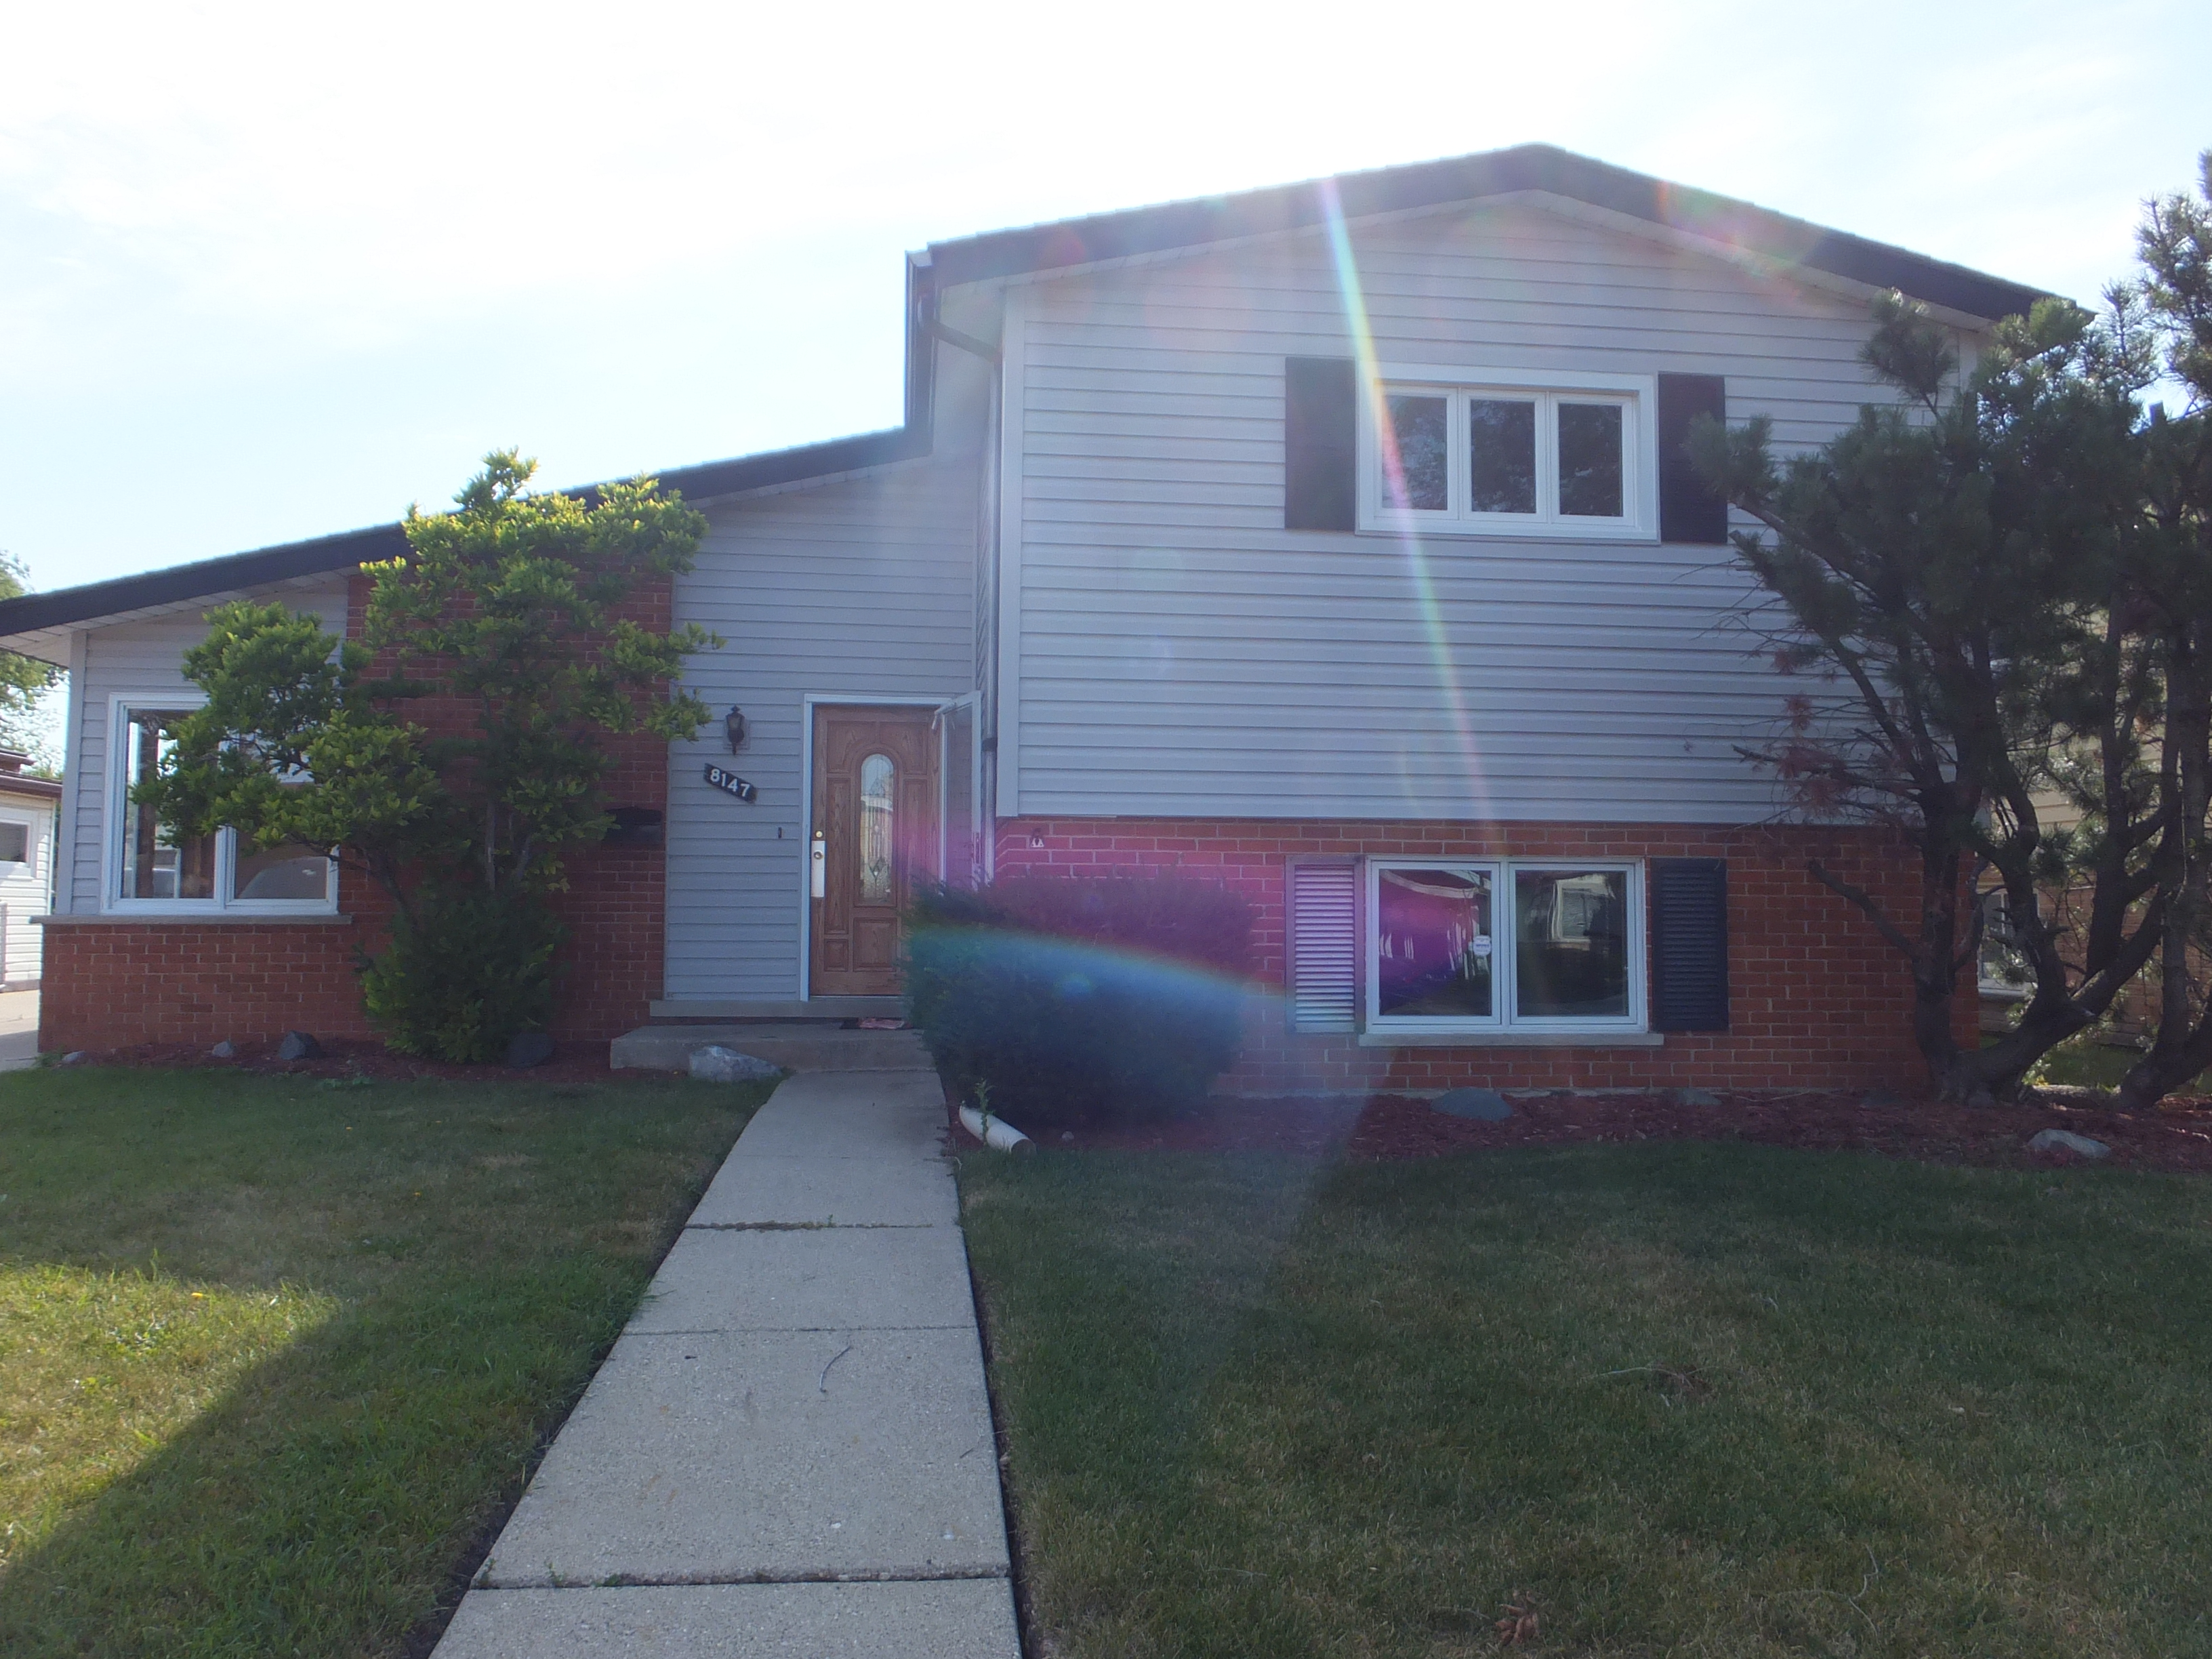 Photo of 8147 N Chester, Niles, IL 60714